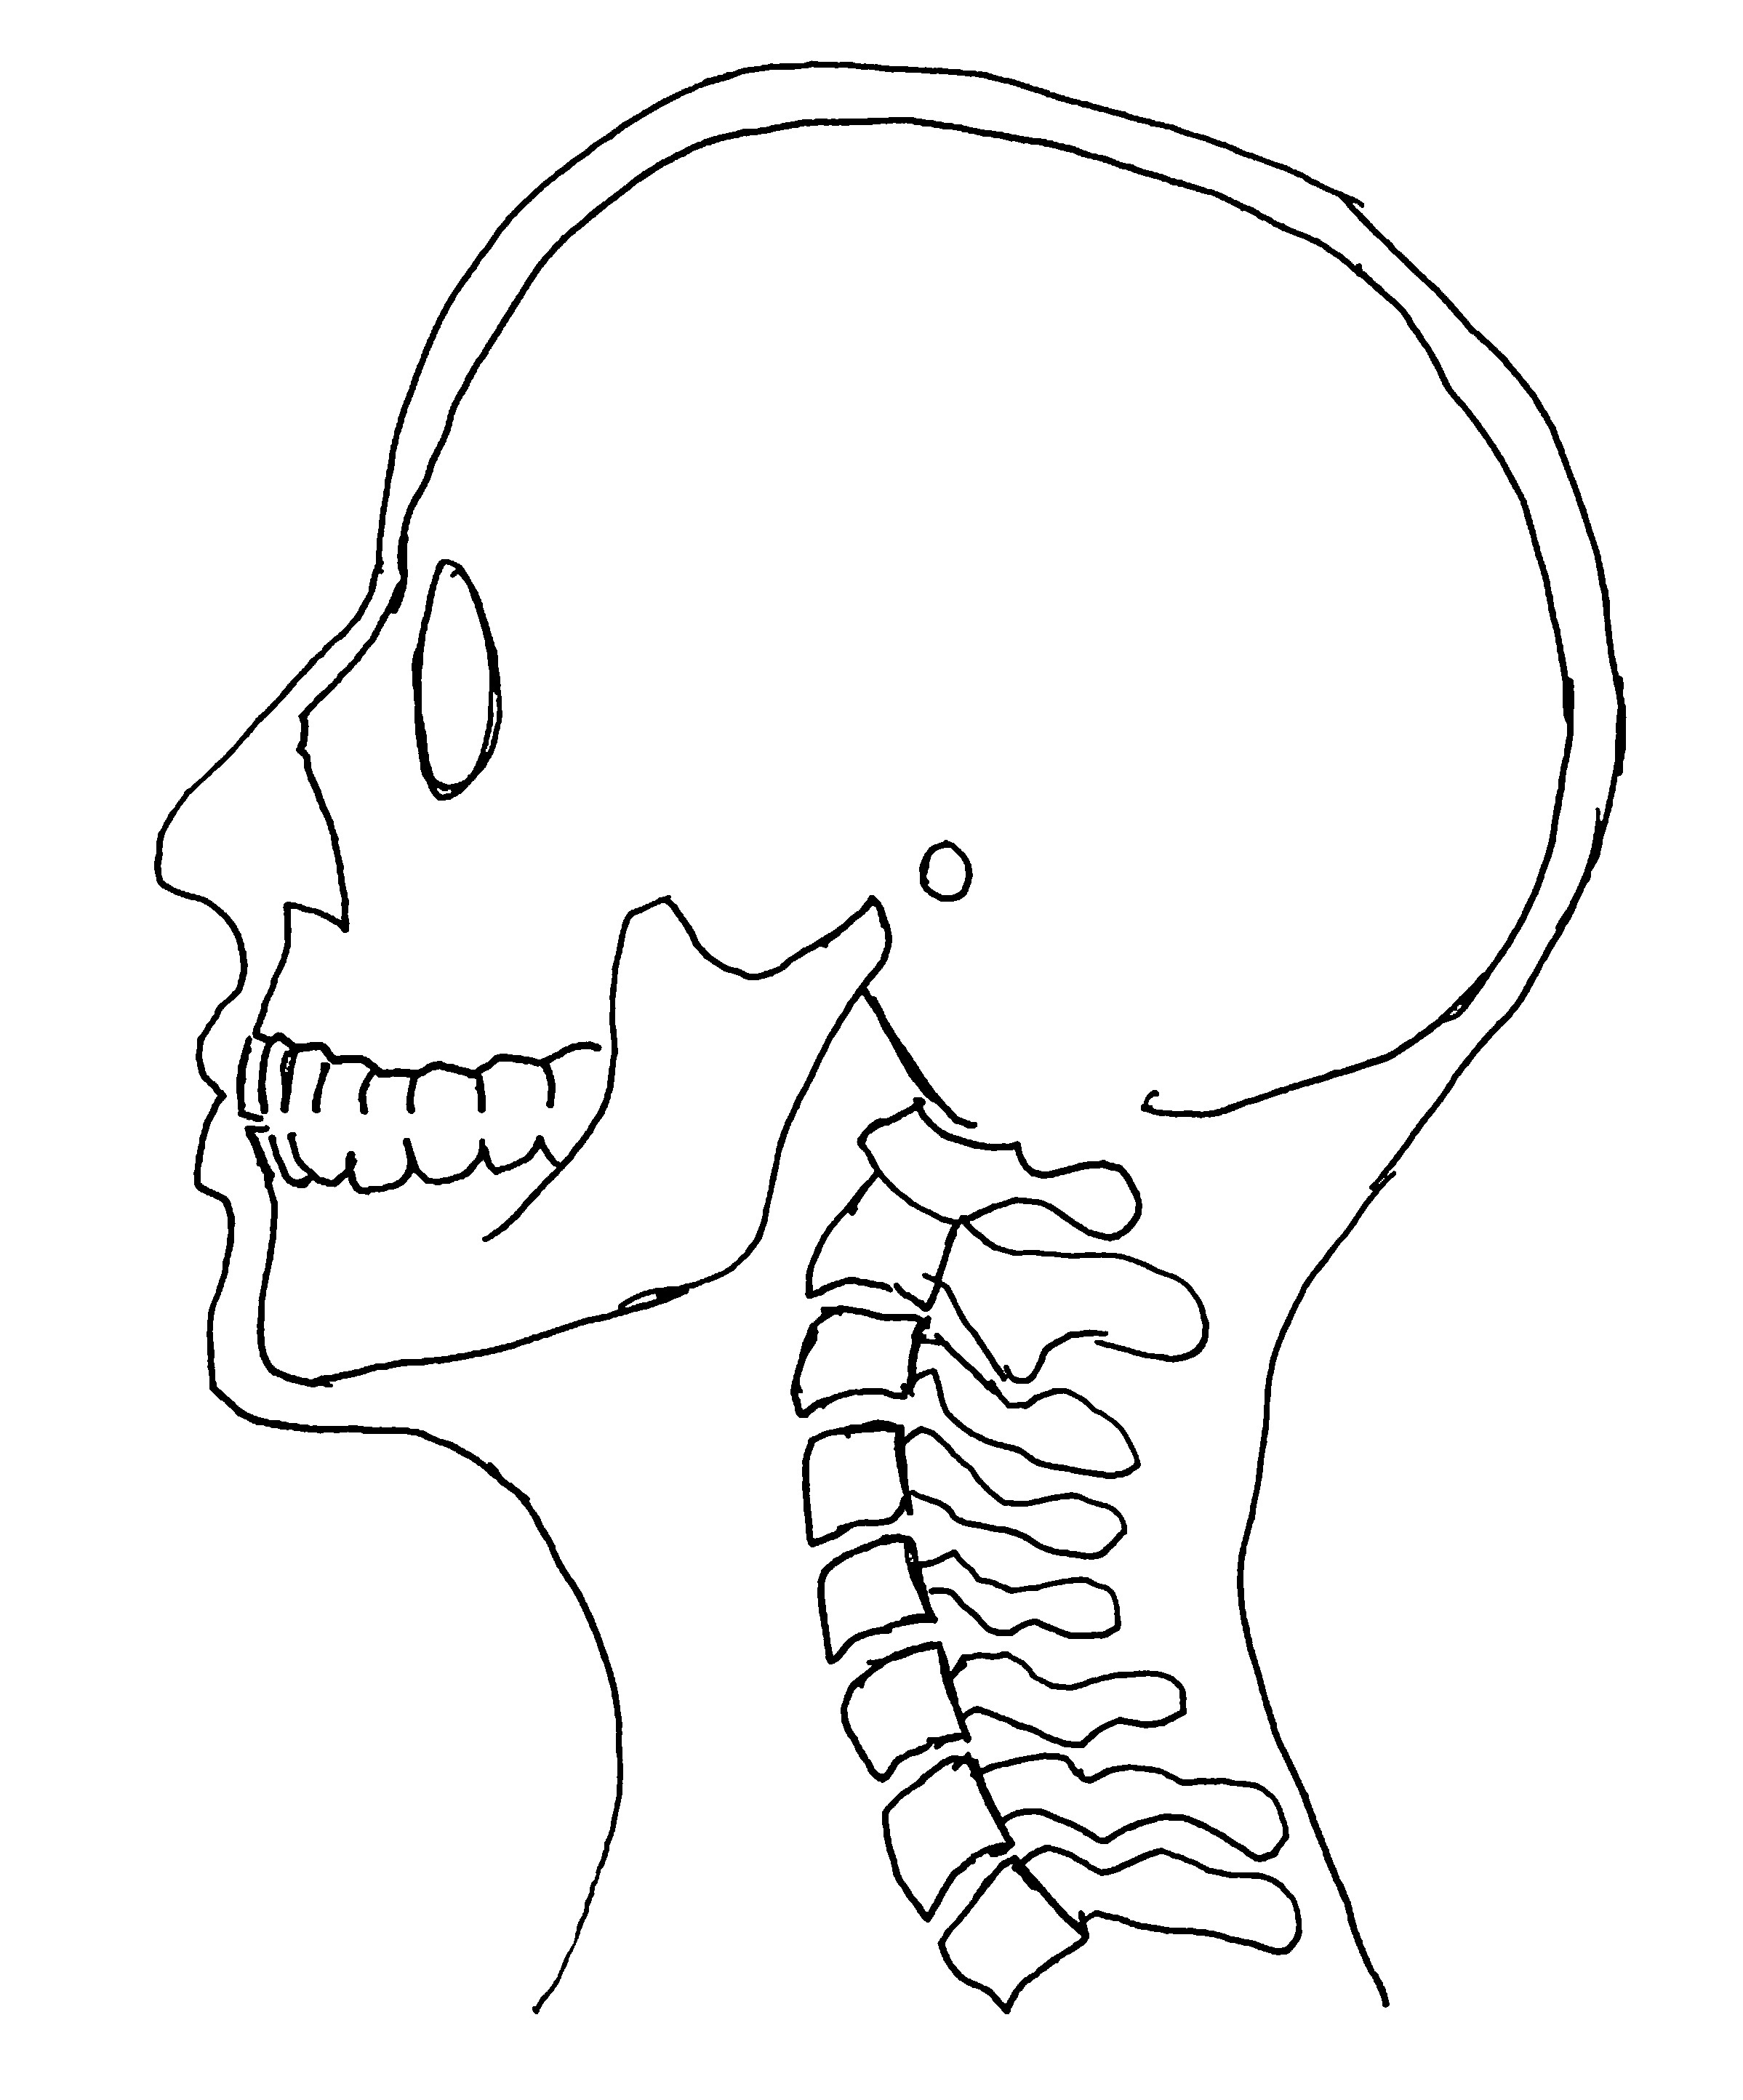 view of head and neck from side